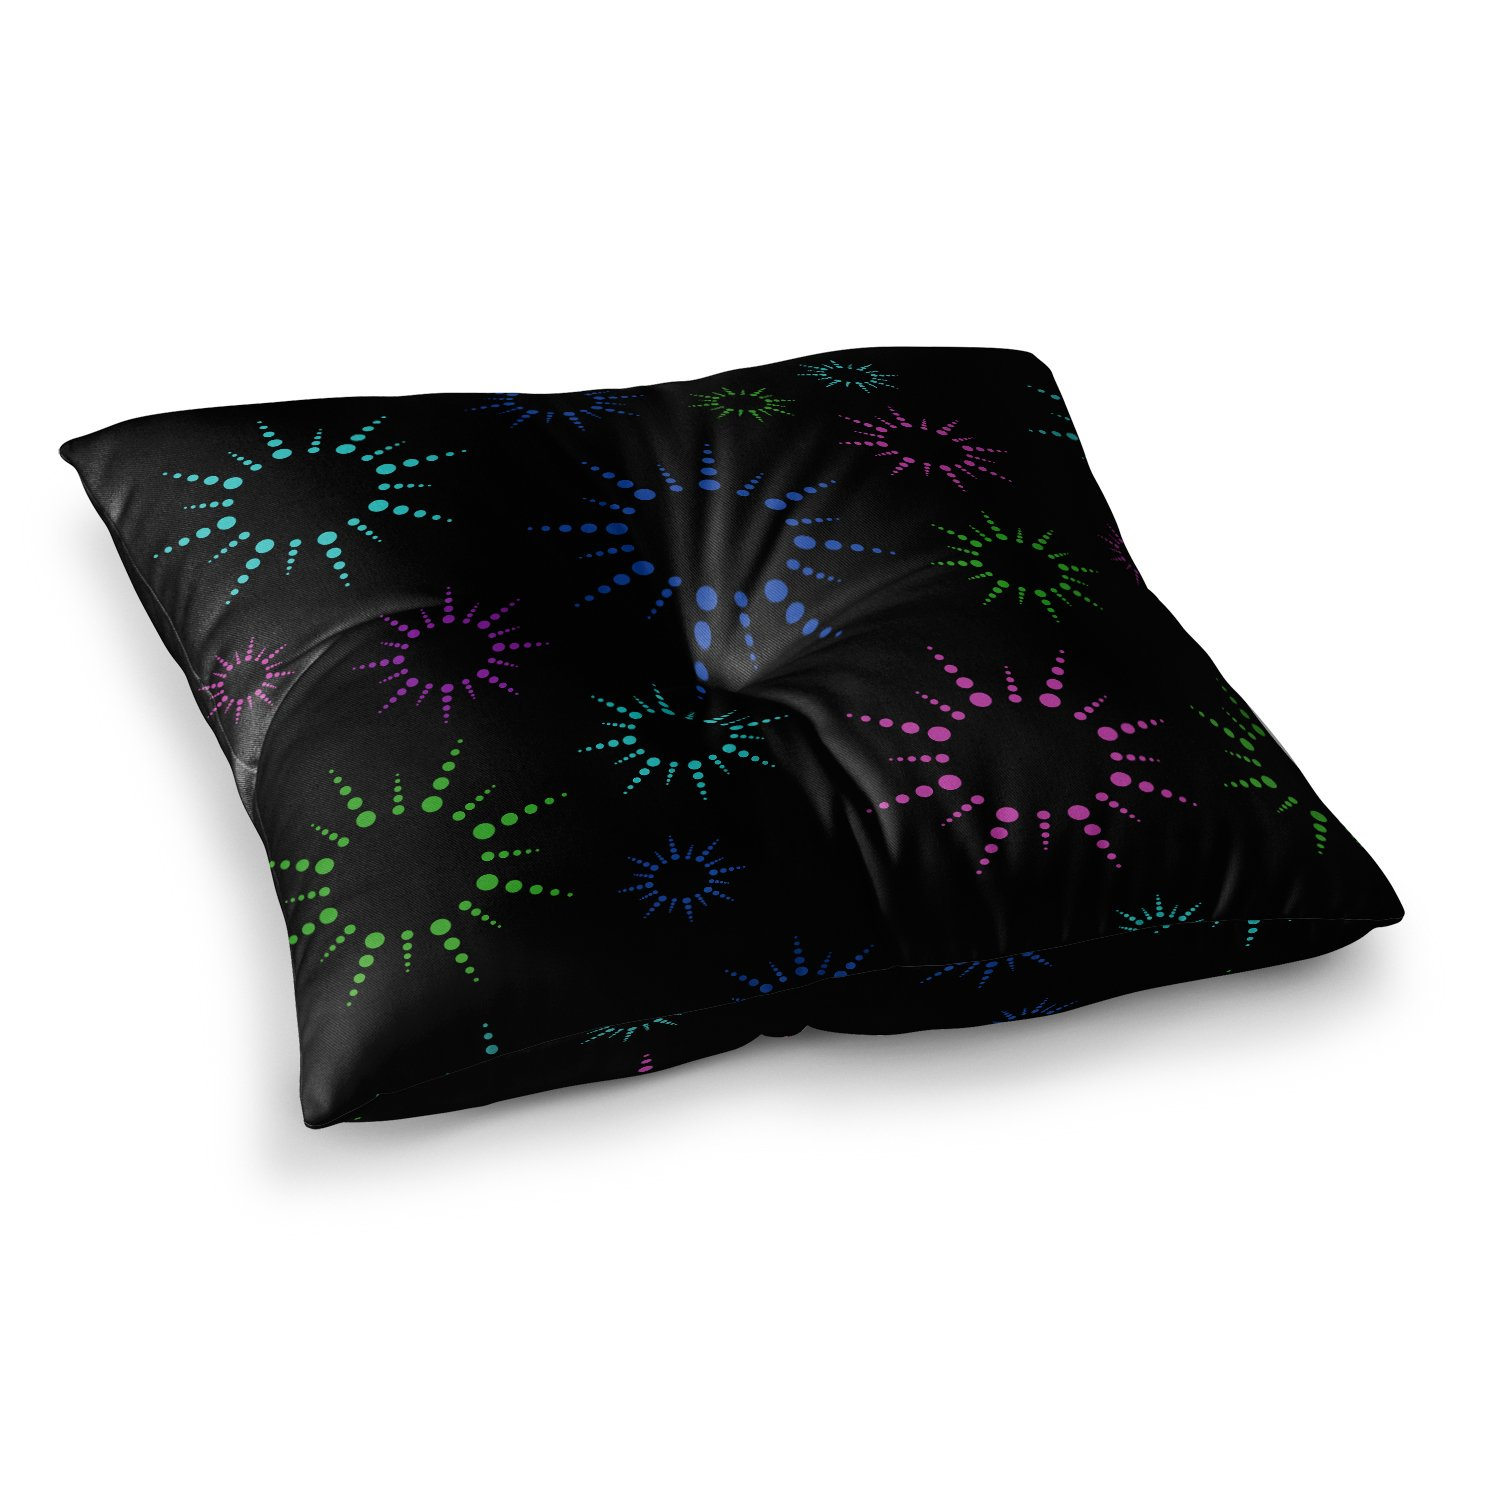 26 x 26 Square Floor Pillow Kess InHouse NL Designs Rainbow Fireworks Black Multicolor Geometric